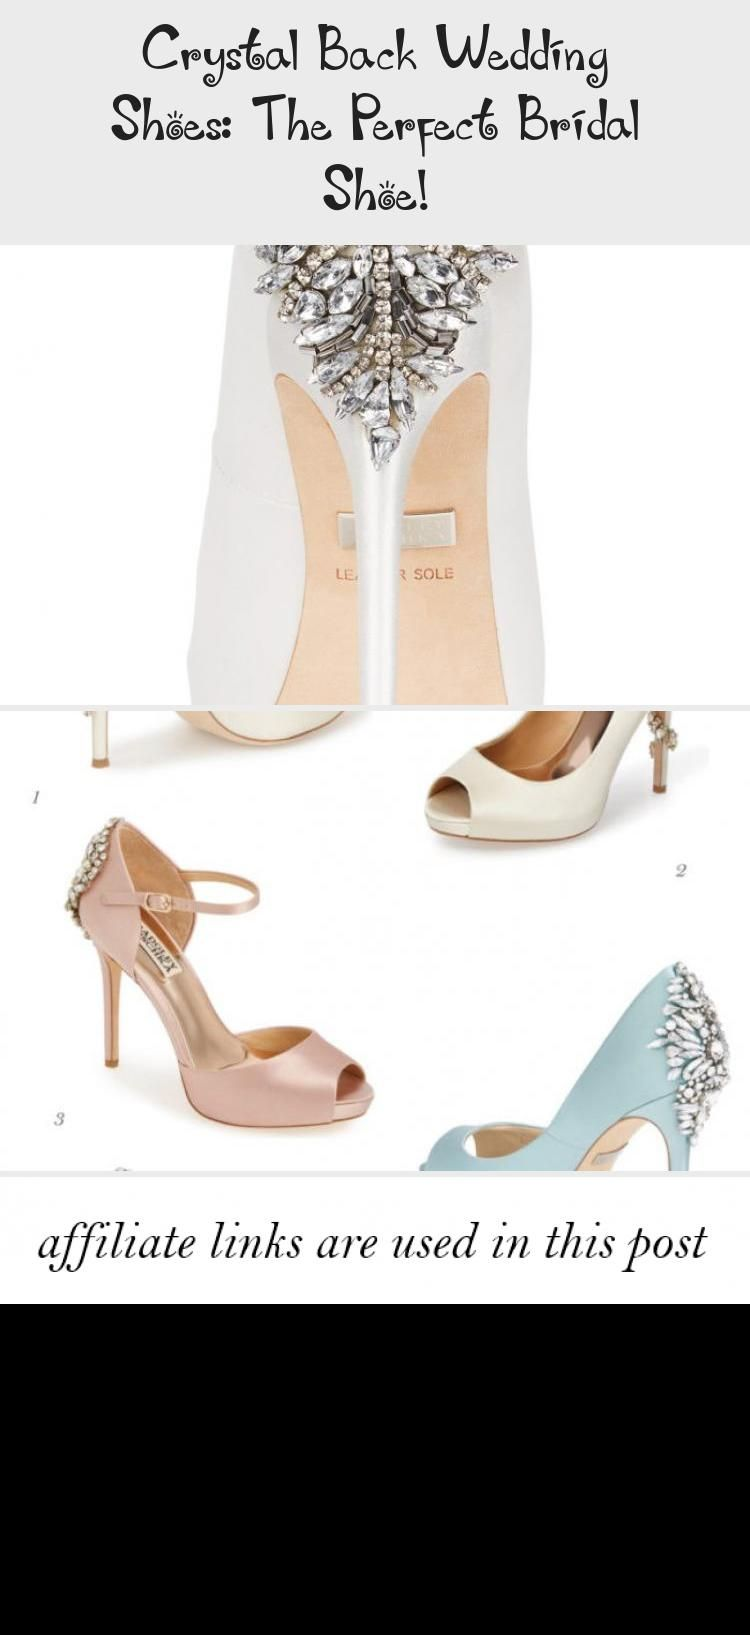 Crystal Back Wedding Shoes: The Perfect Bridal Shoe! - Clothing